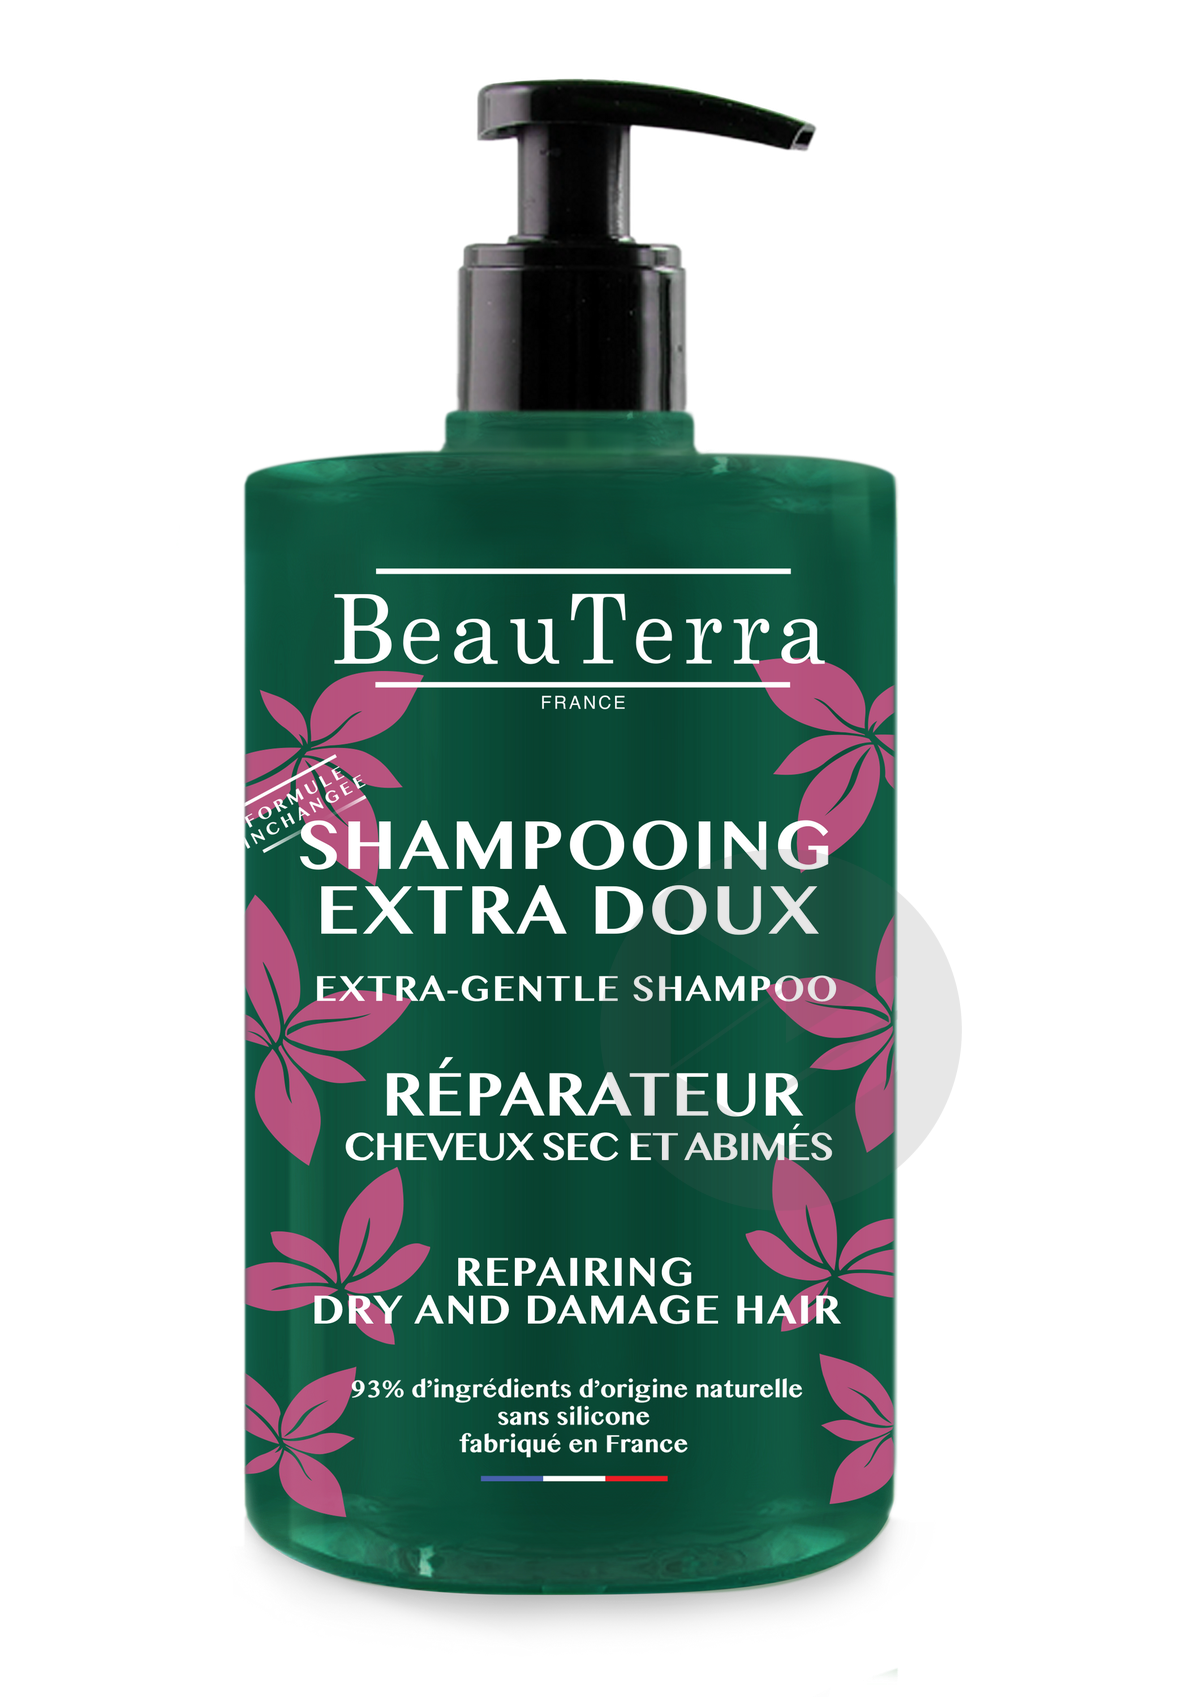 Shampooing Extra Doux Reparateur 750 Ml